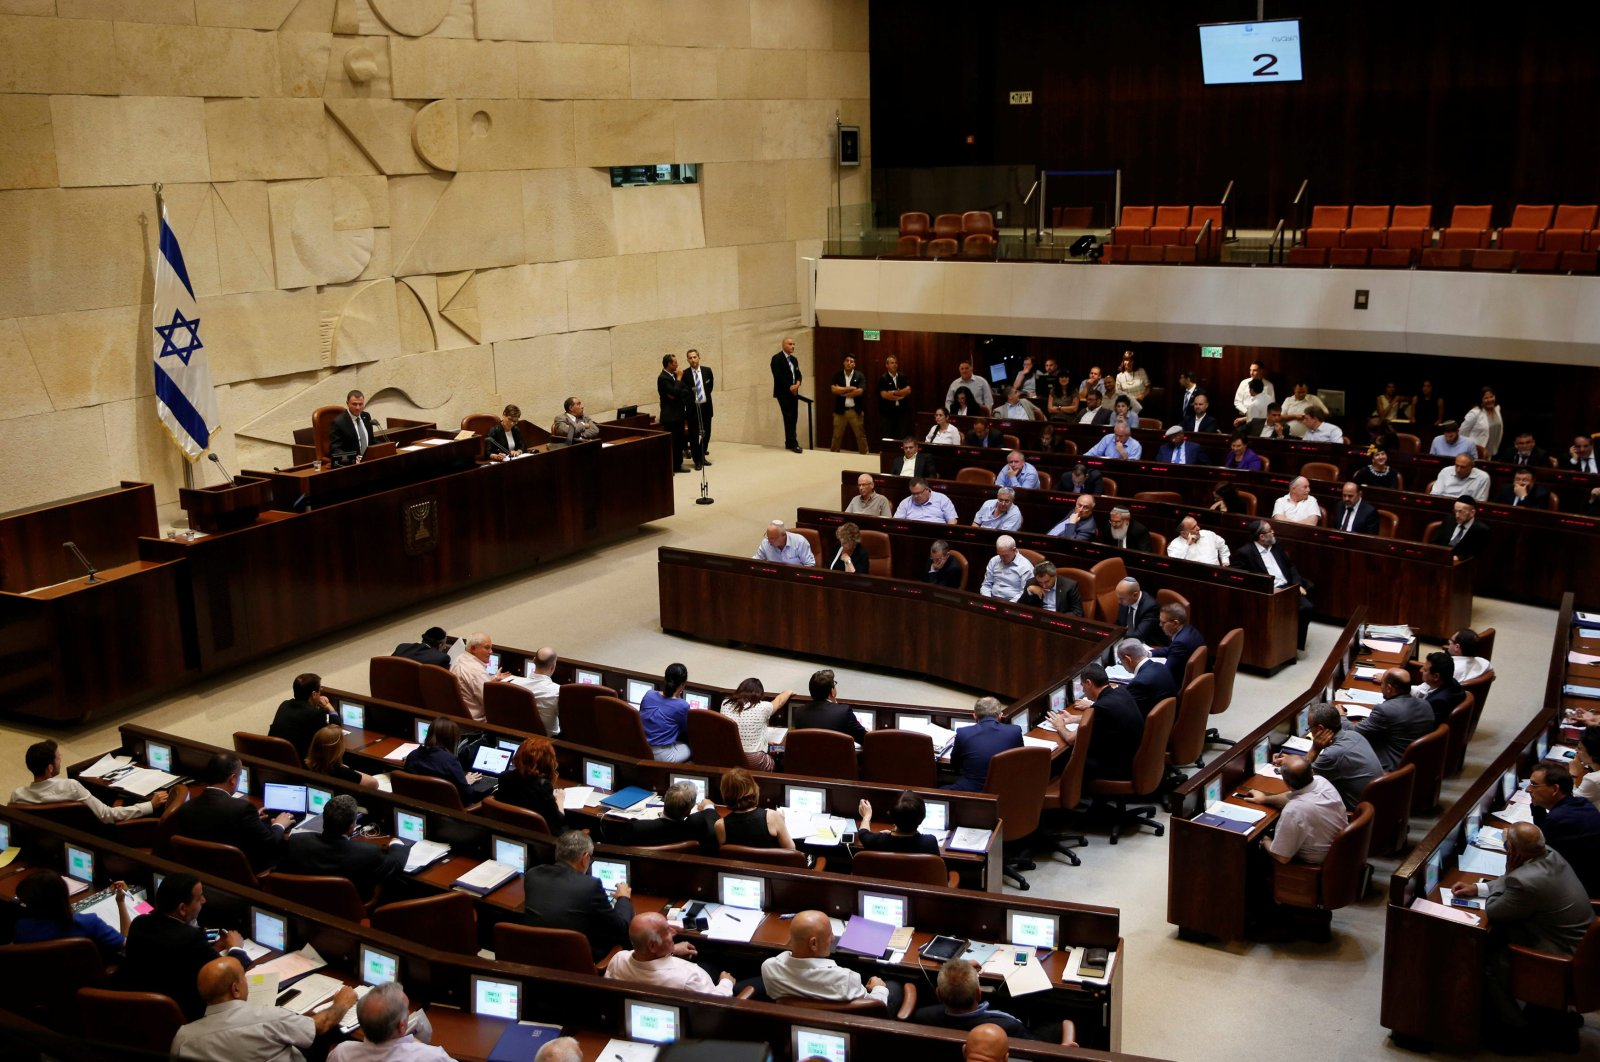 The plenum during a session at the Knesset, the Israeli parliament, Jerusalem, July 11, 2016. (Reuters Photo)